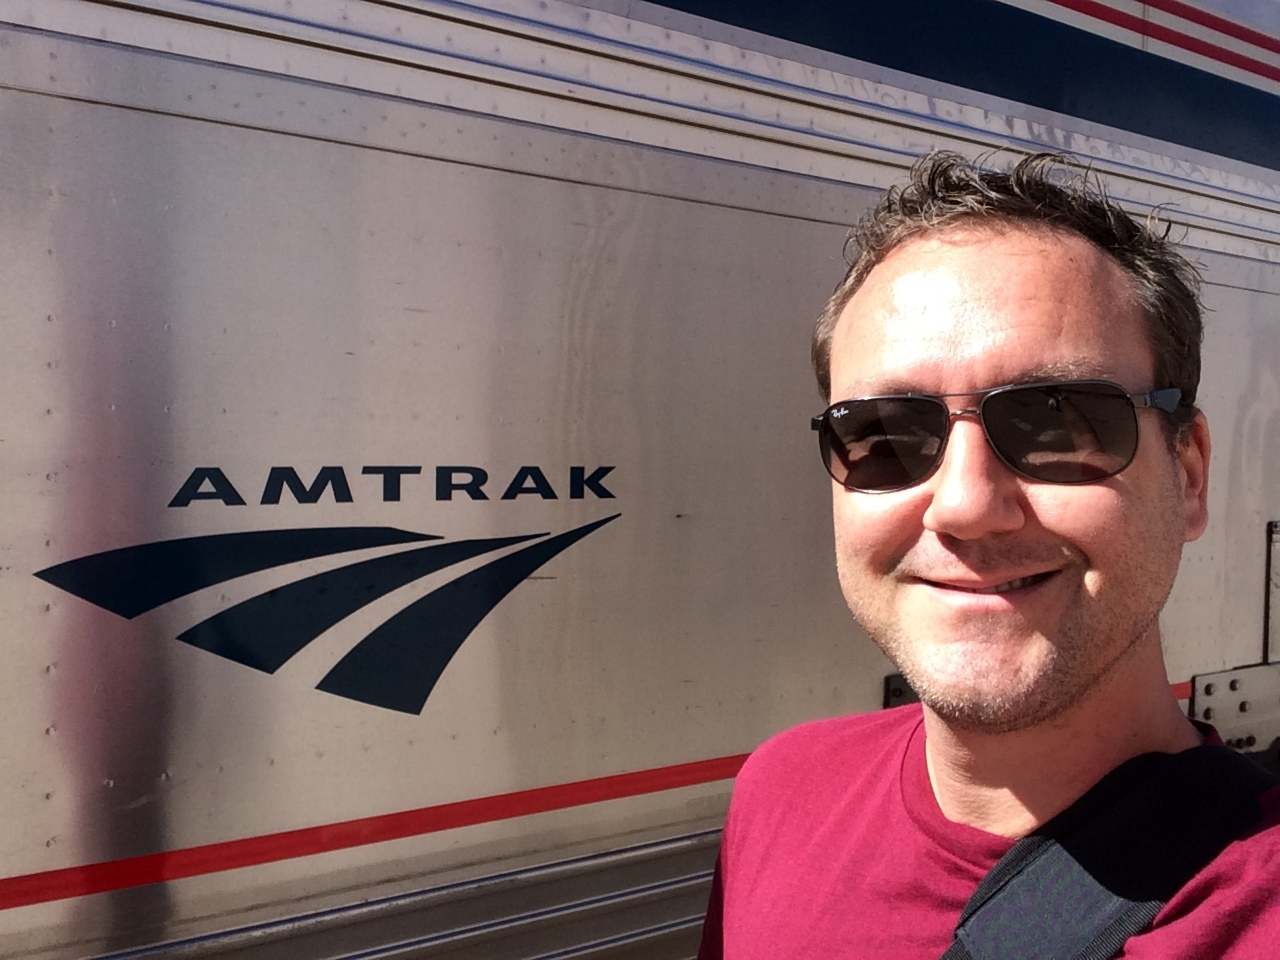 Amtrak across america. Train and man. Portrait beside a train. Slowing down, better work. Surprising productivity while taking a train from Salt Lake City to Cincinnati.